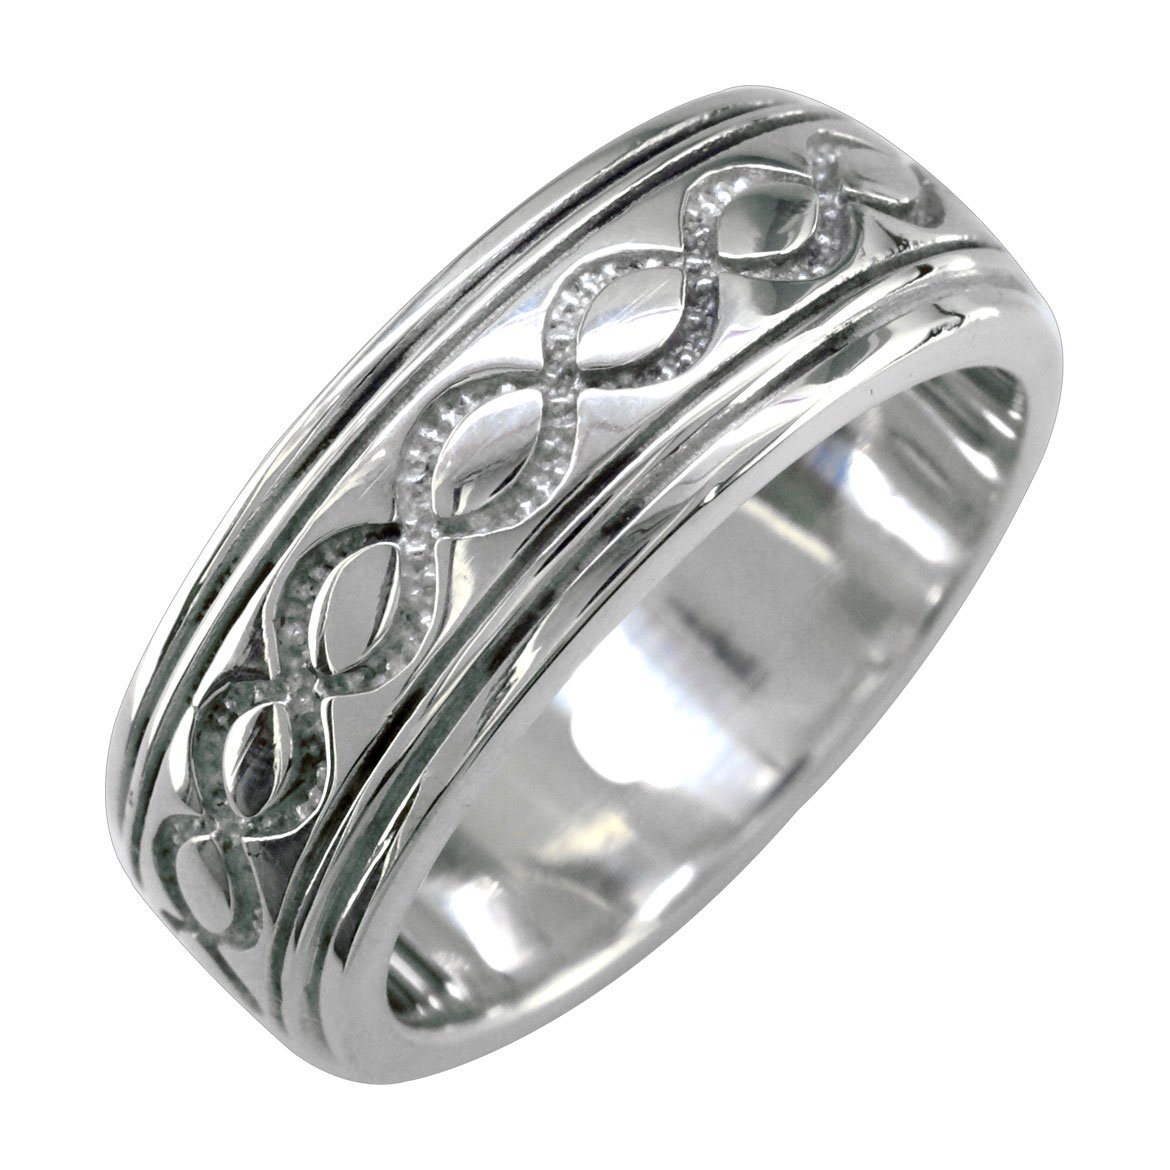 Mens or Womens Wide Infinity Wedding Ring, 8.5mm in Sterling Silver - size 8.5 by Sziro Infinity Wedding Bands